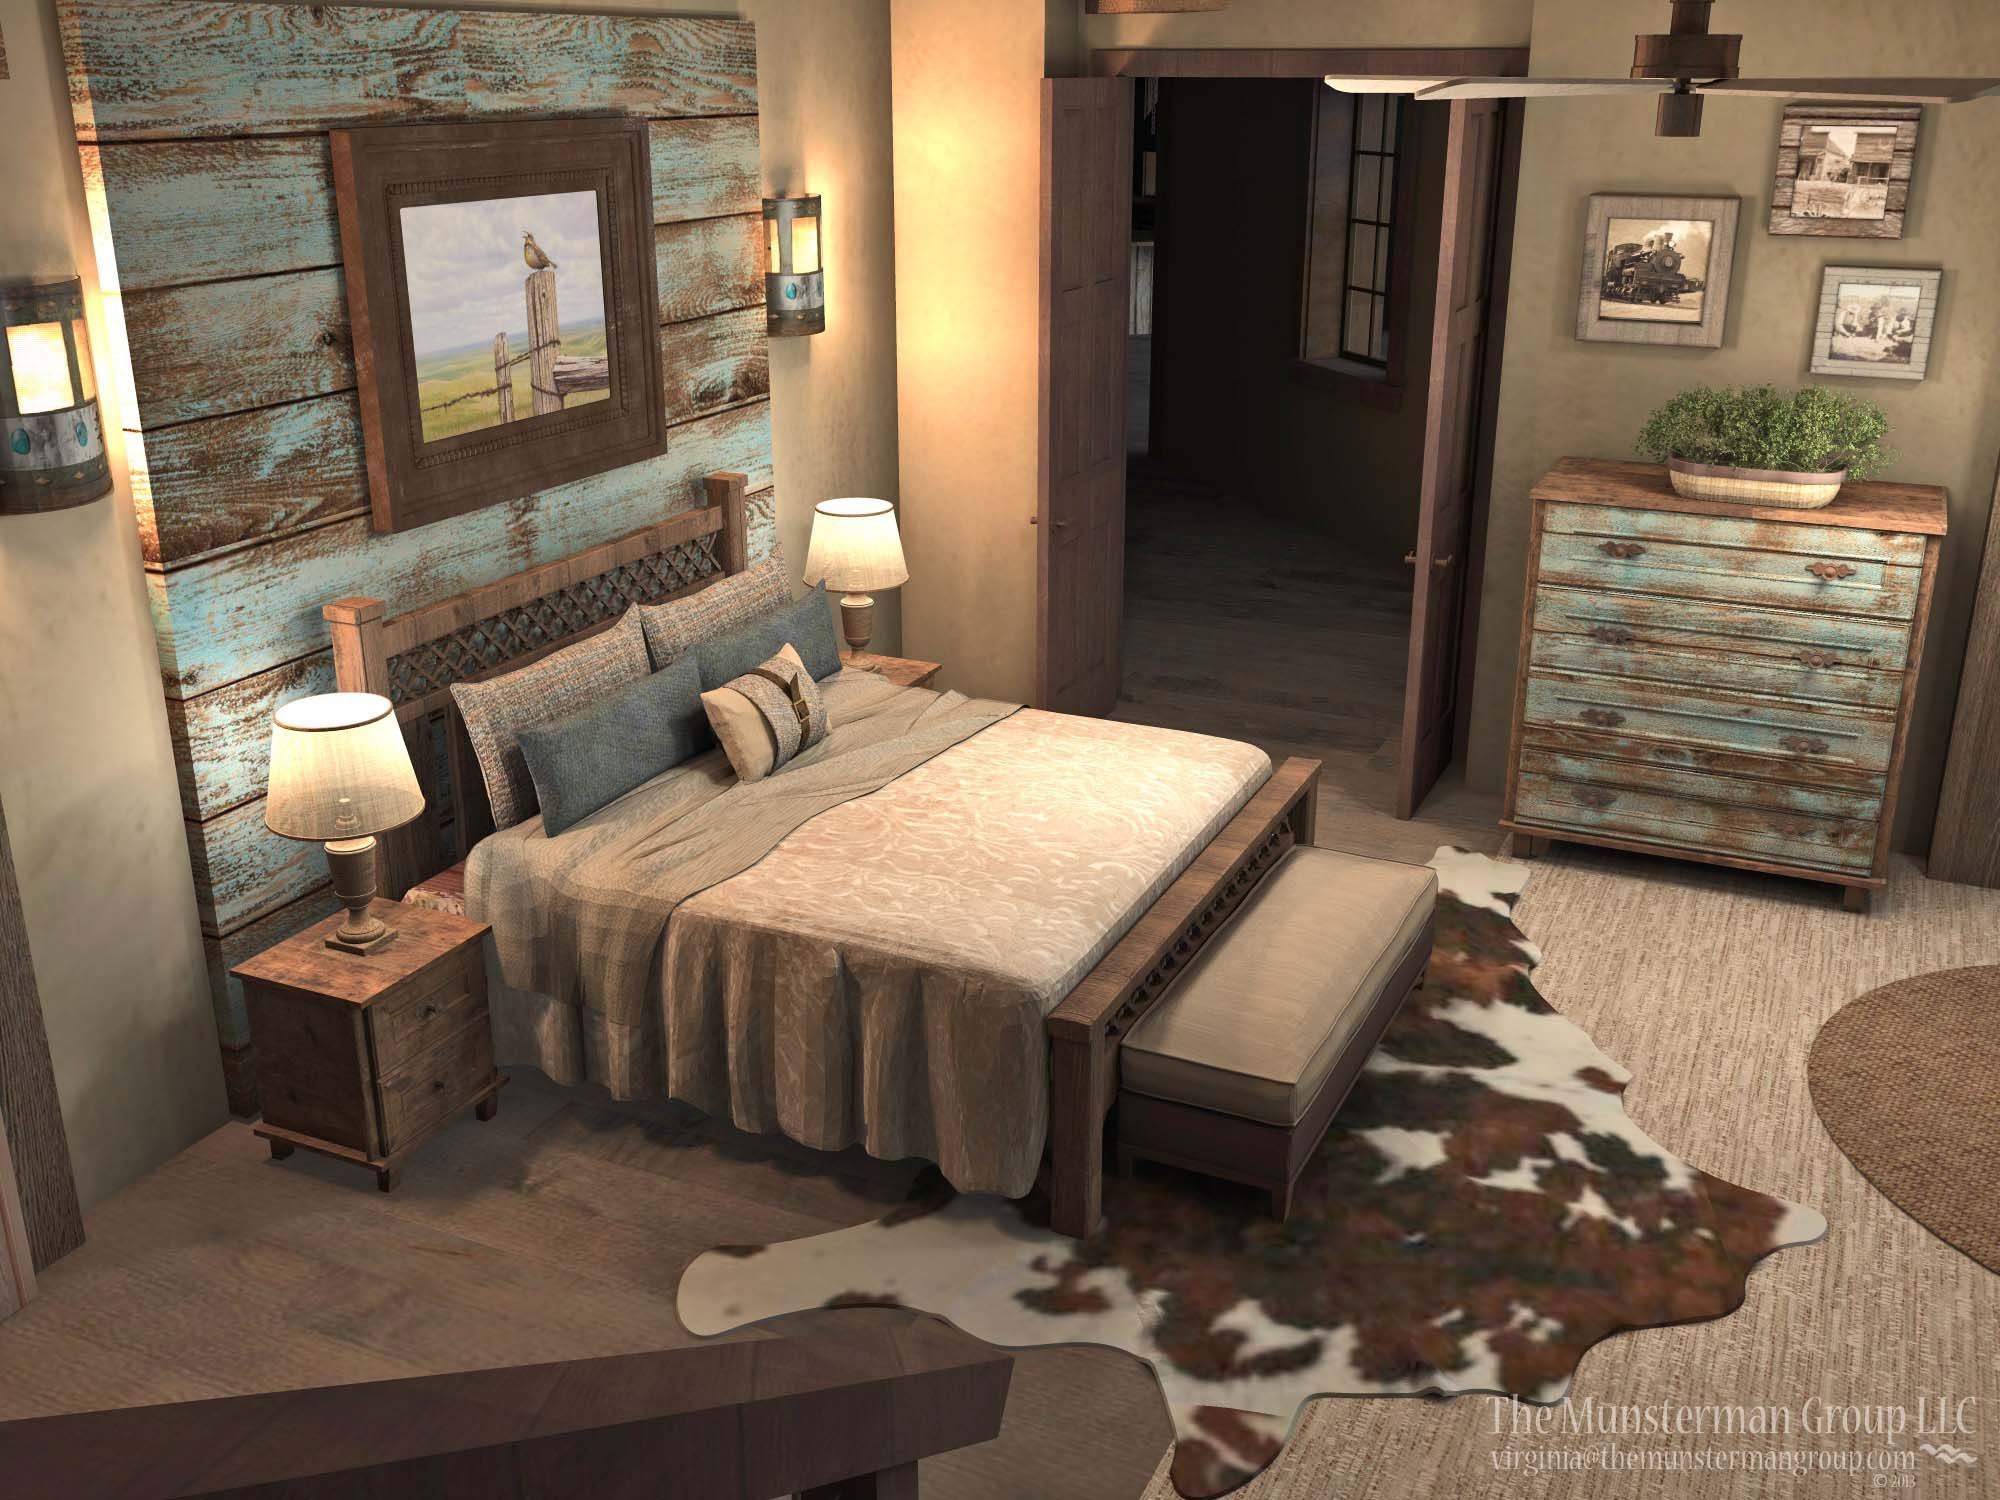 master bedroom design concept turquoise wash barnwood neutral palette browns and coppers - Bedroom Design Concepts